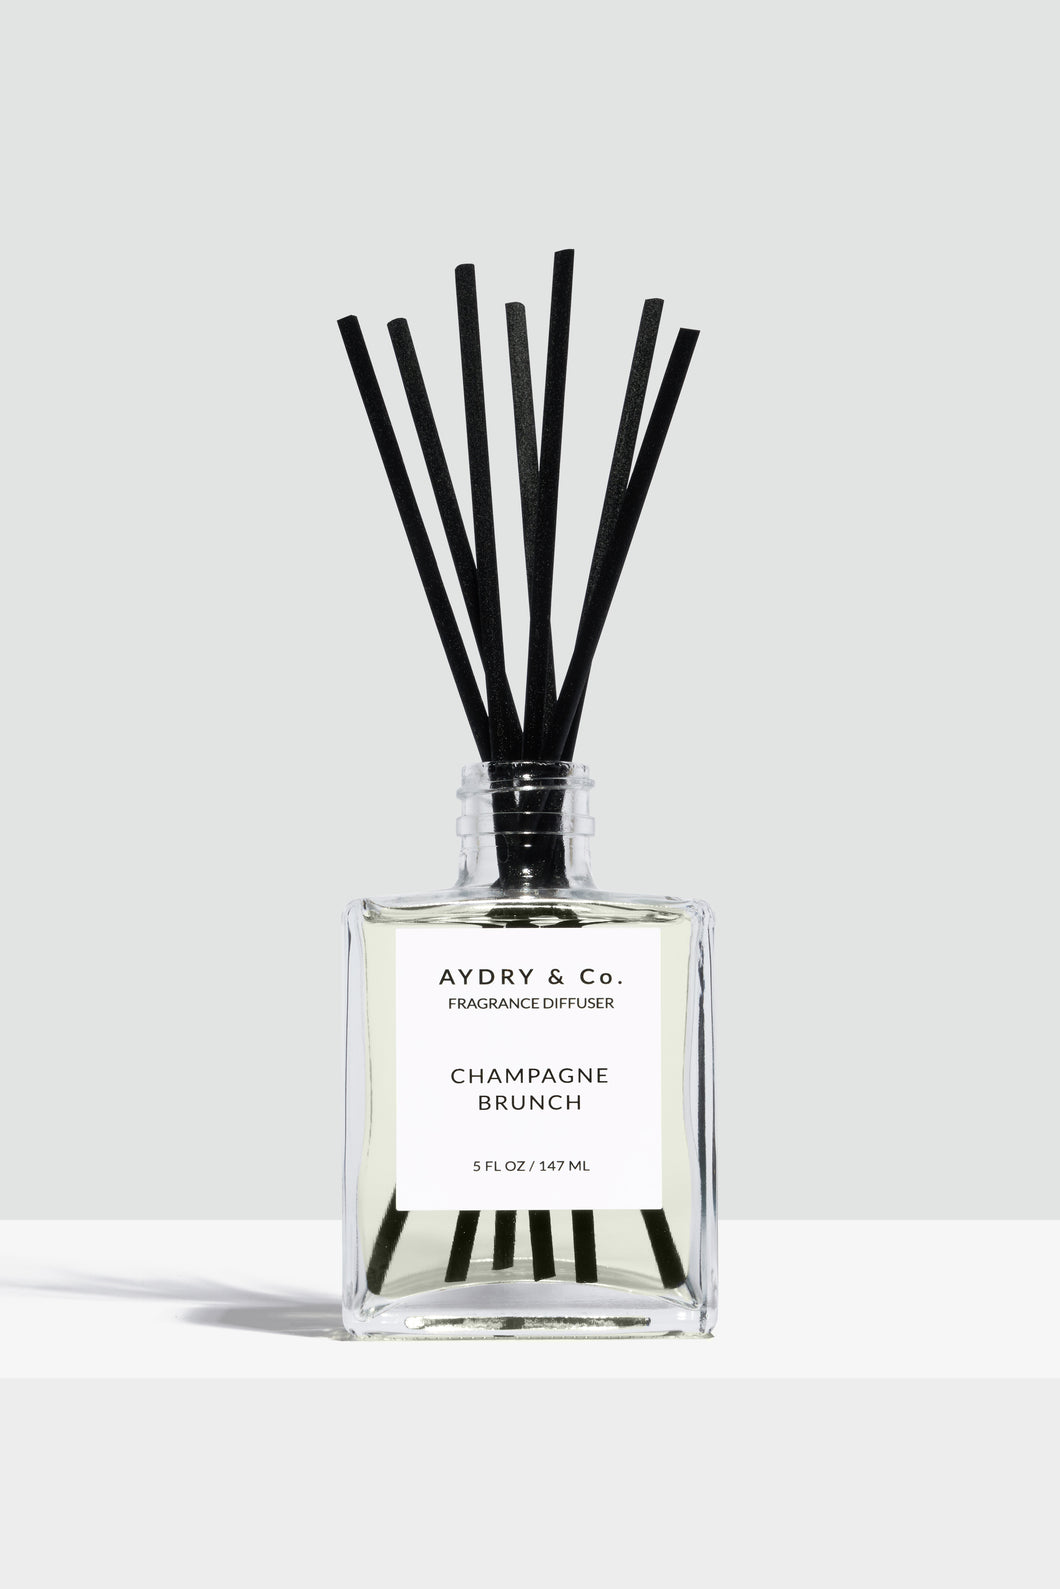 Aydry & Co. - Champagne Brunch Fragrance Diffuser